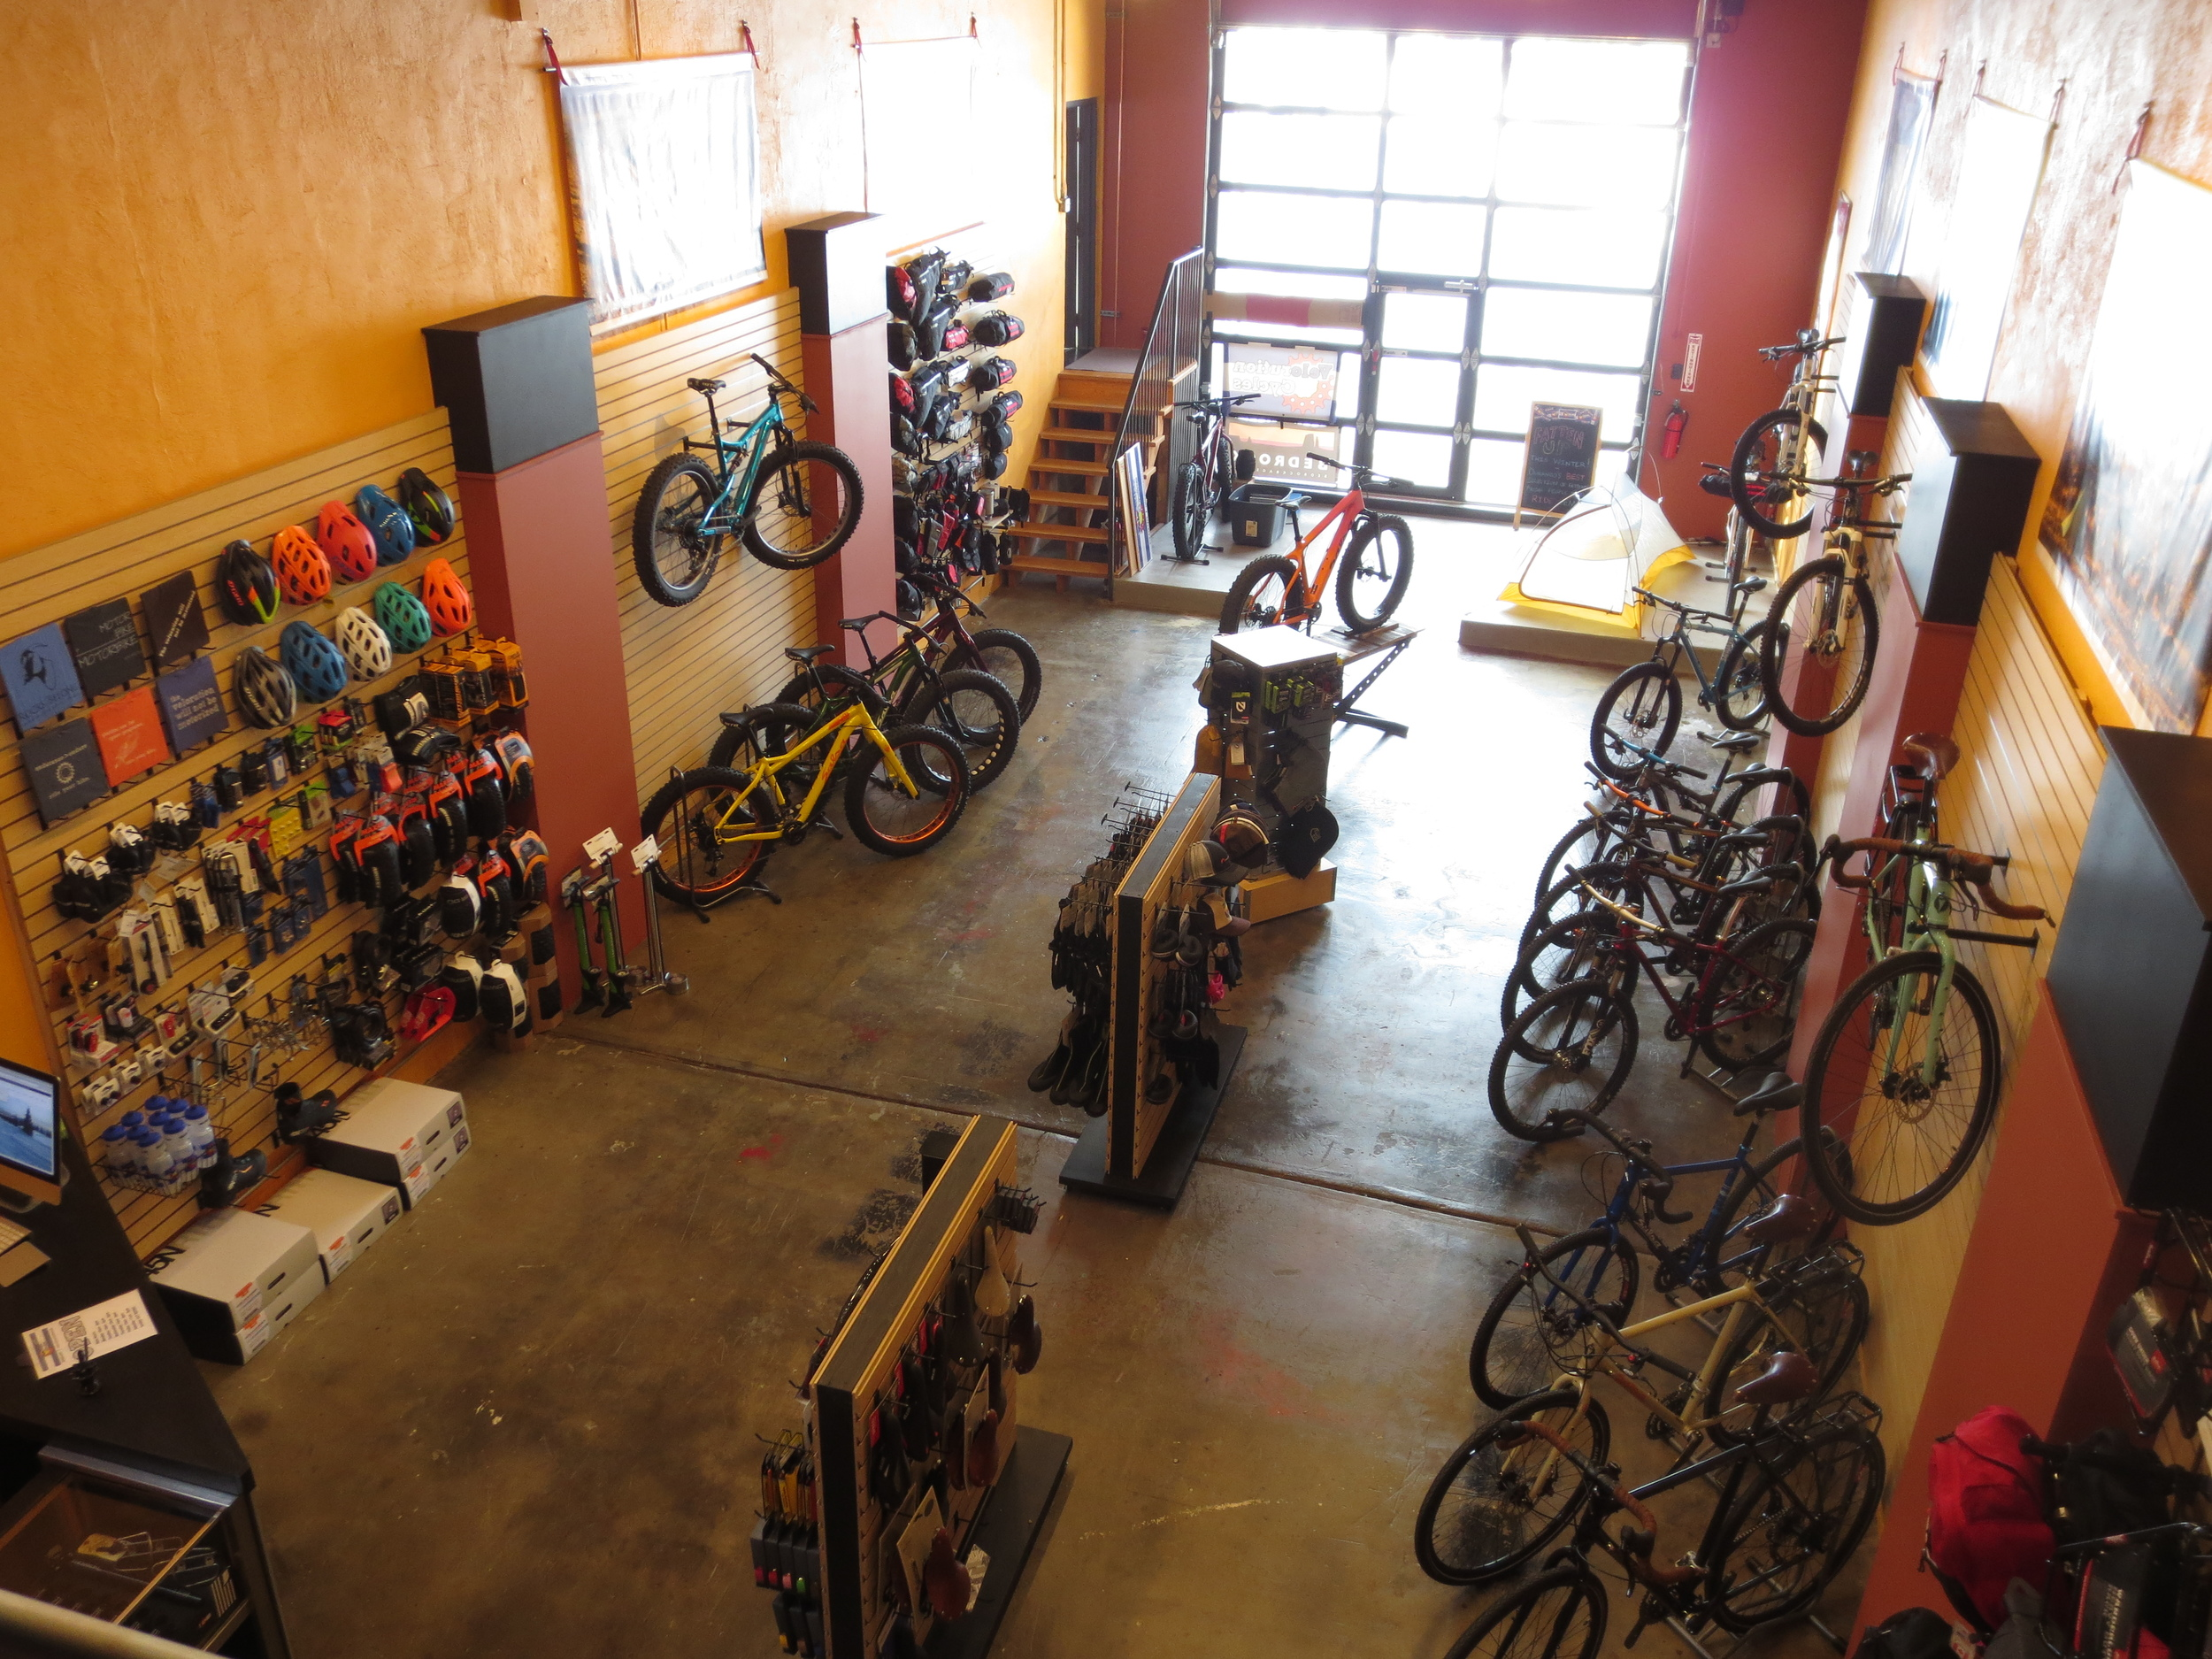 Parts, accessories, and gear for bicycle adventures large and small